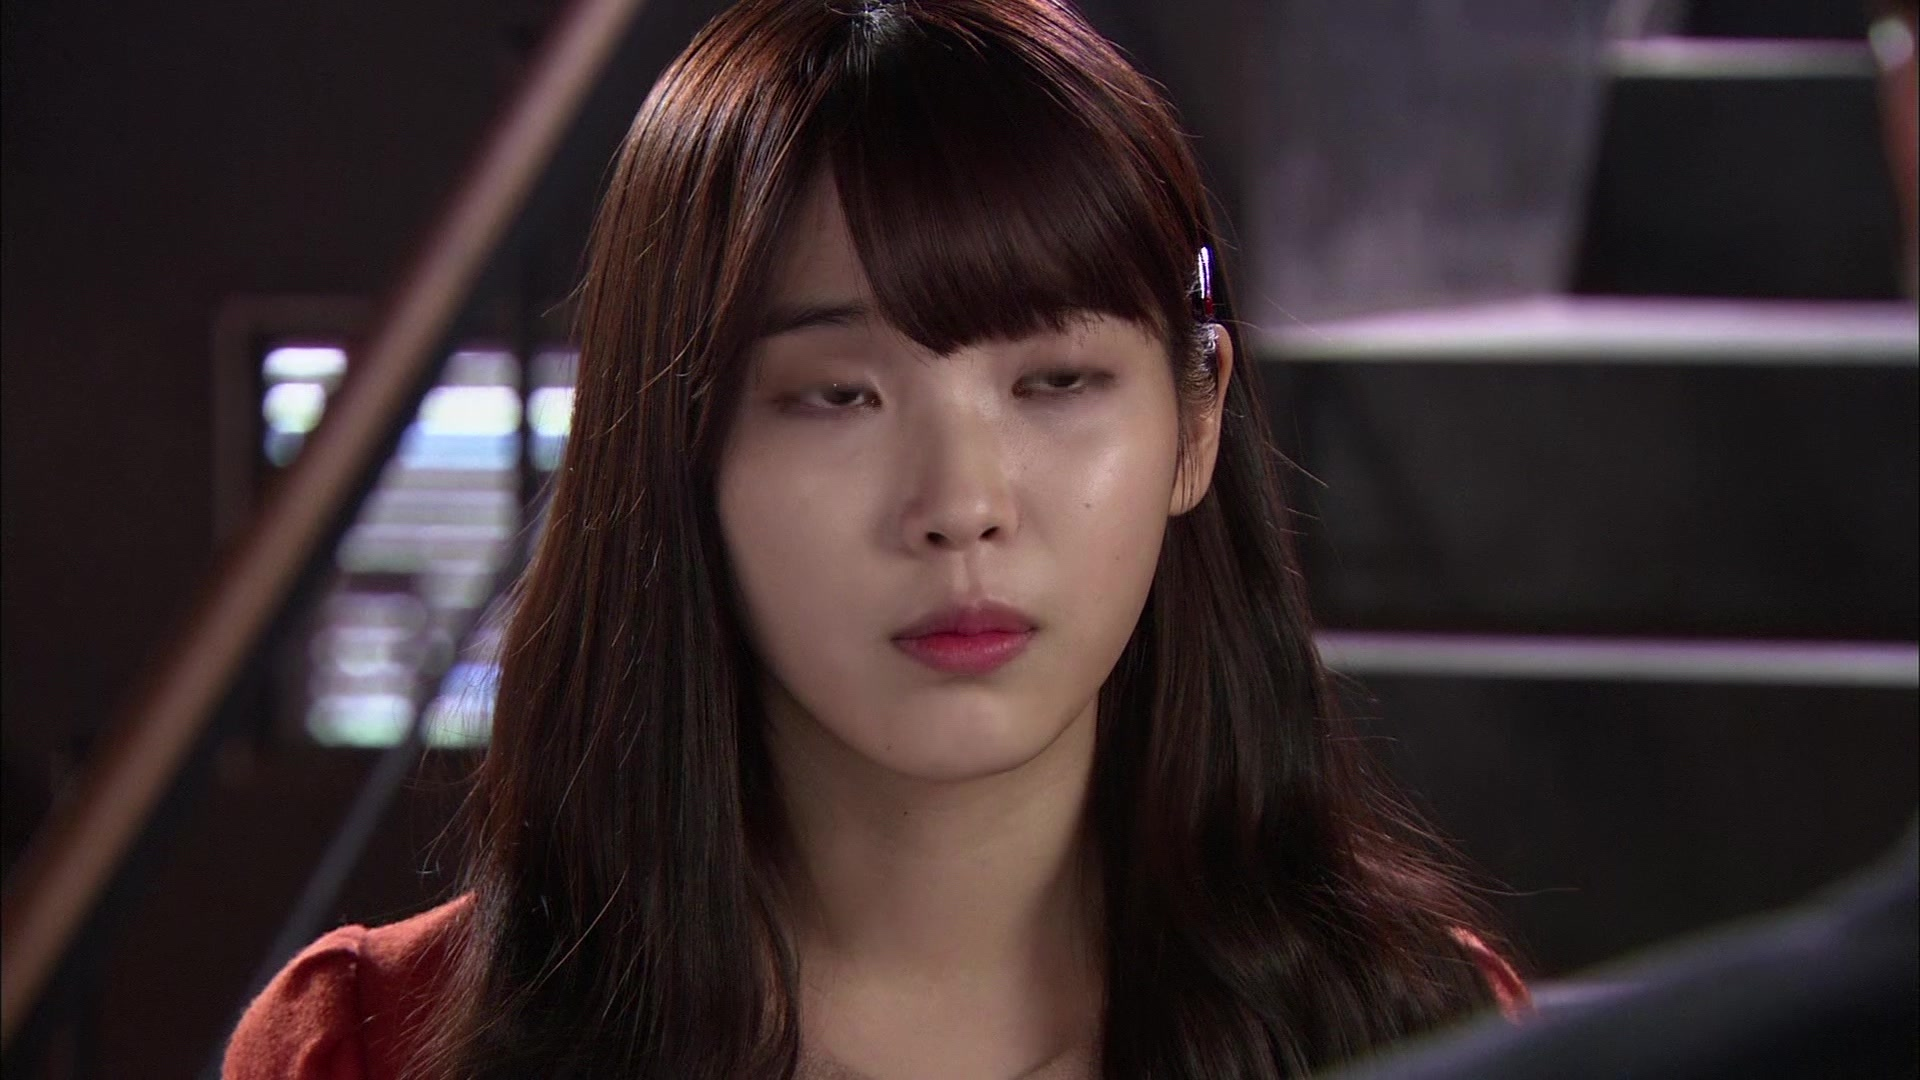 You're the Best, Lee Soon Shin Episode 2